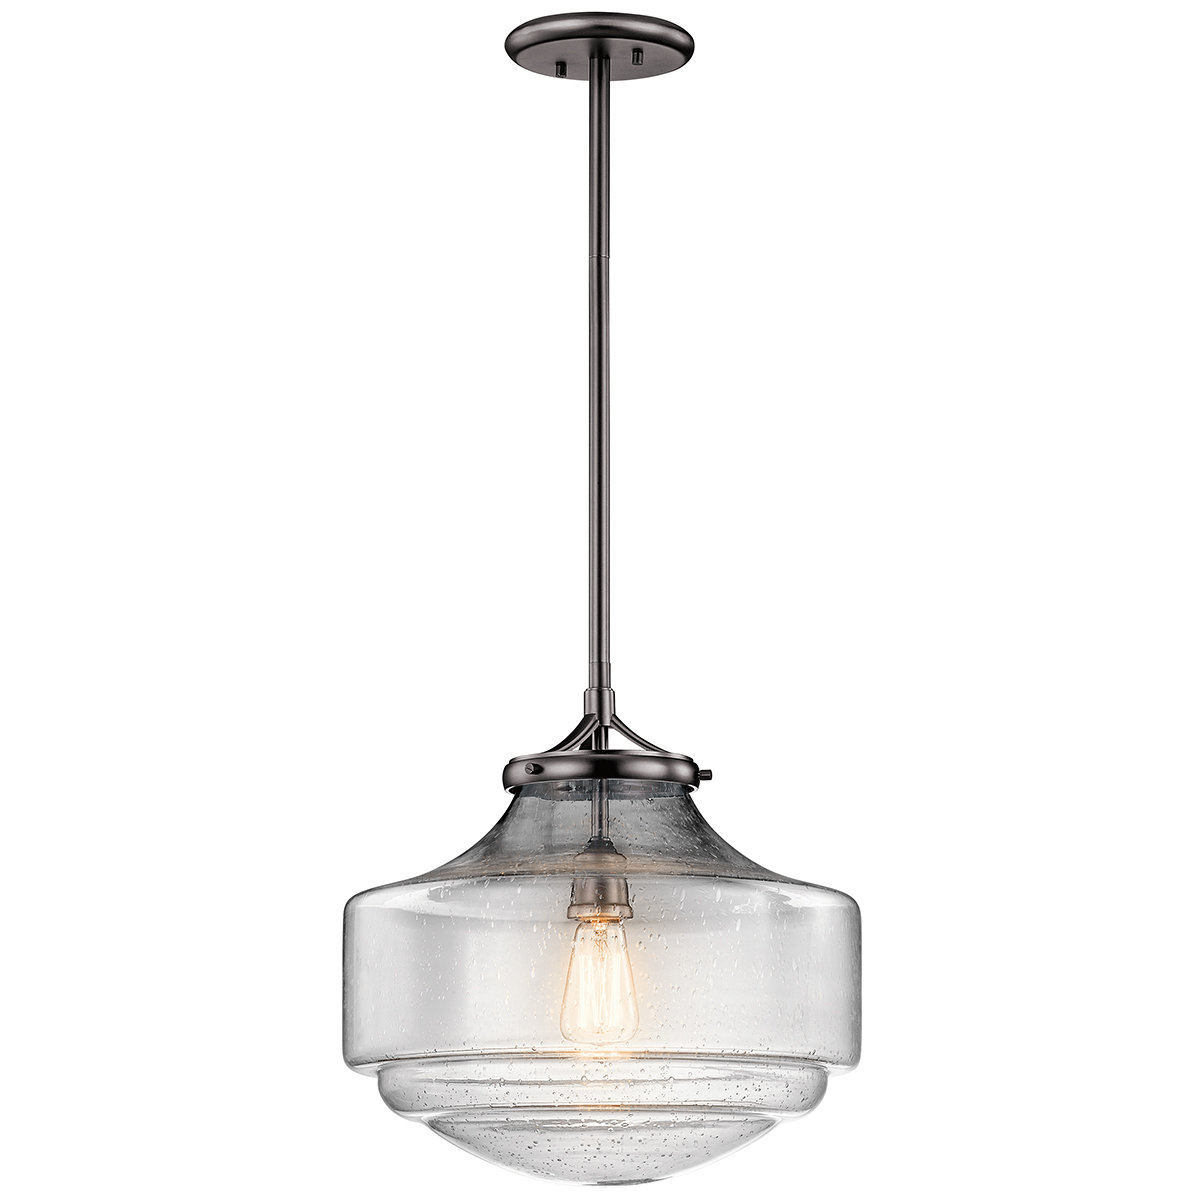 Marybeth 1 Light Schoolhouse Pendant With Most Up To Date Mueller 1 Light Single Dome Pendants (Gallery 17 of 20)